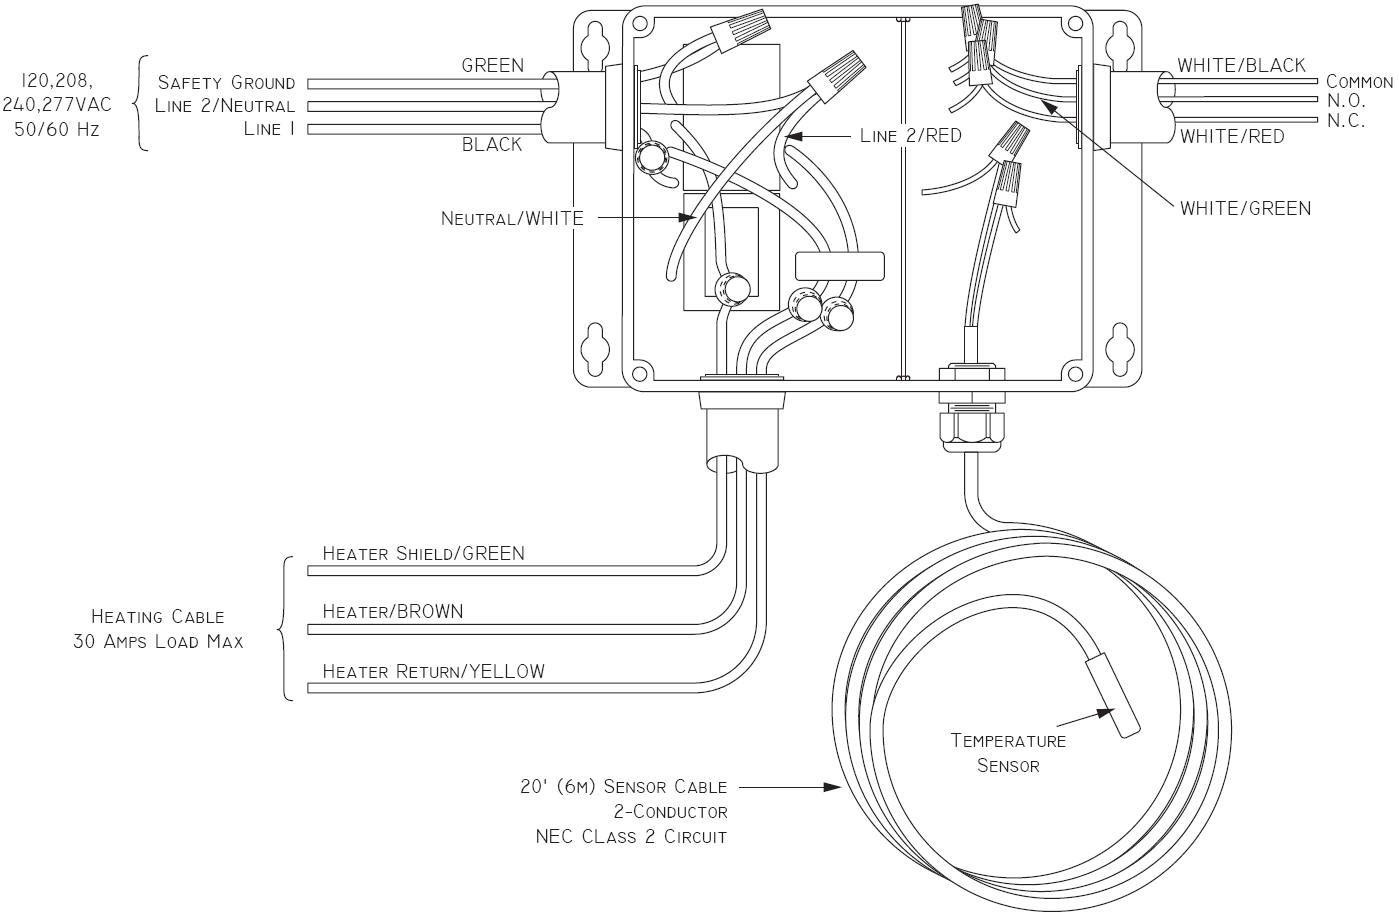 Electric Baseboard Heat Wiring Diagram Site To Vpn Network